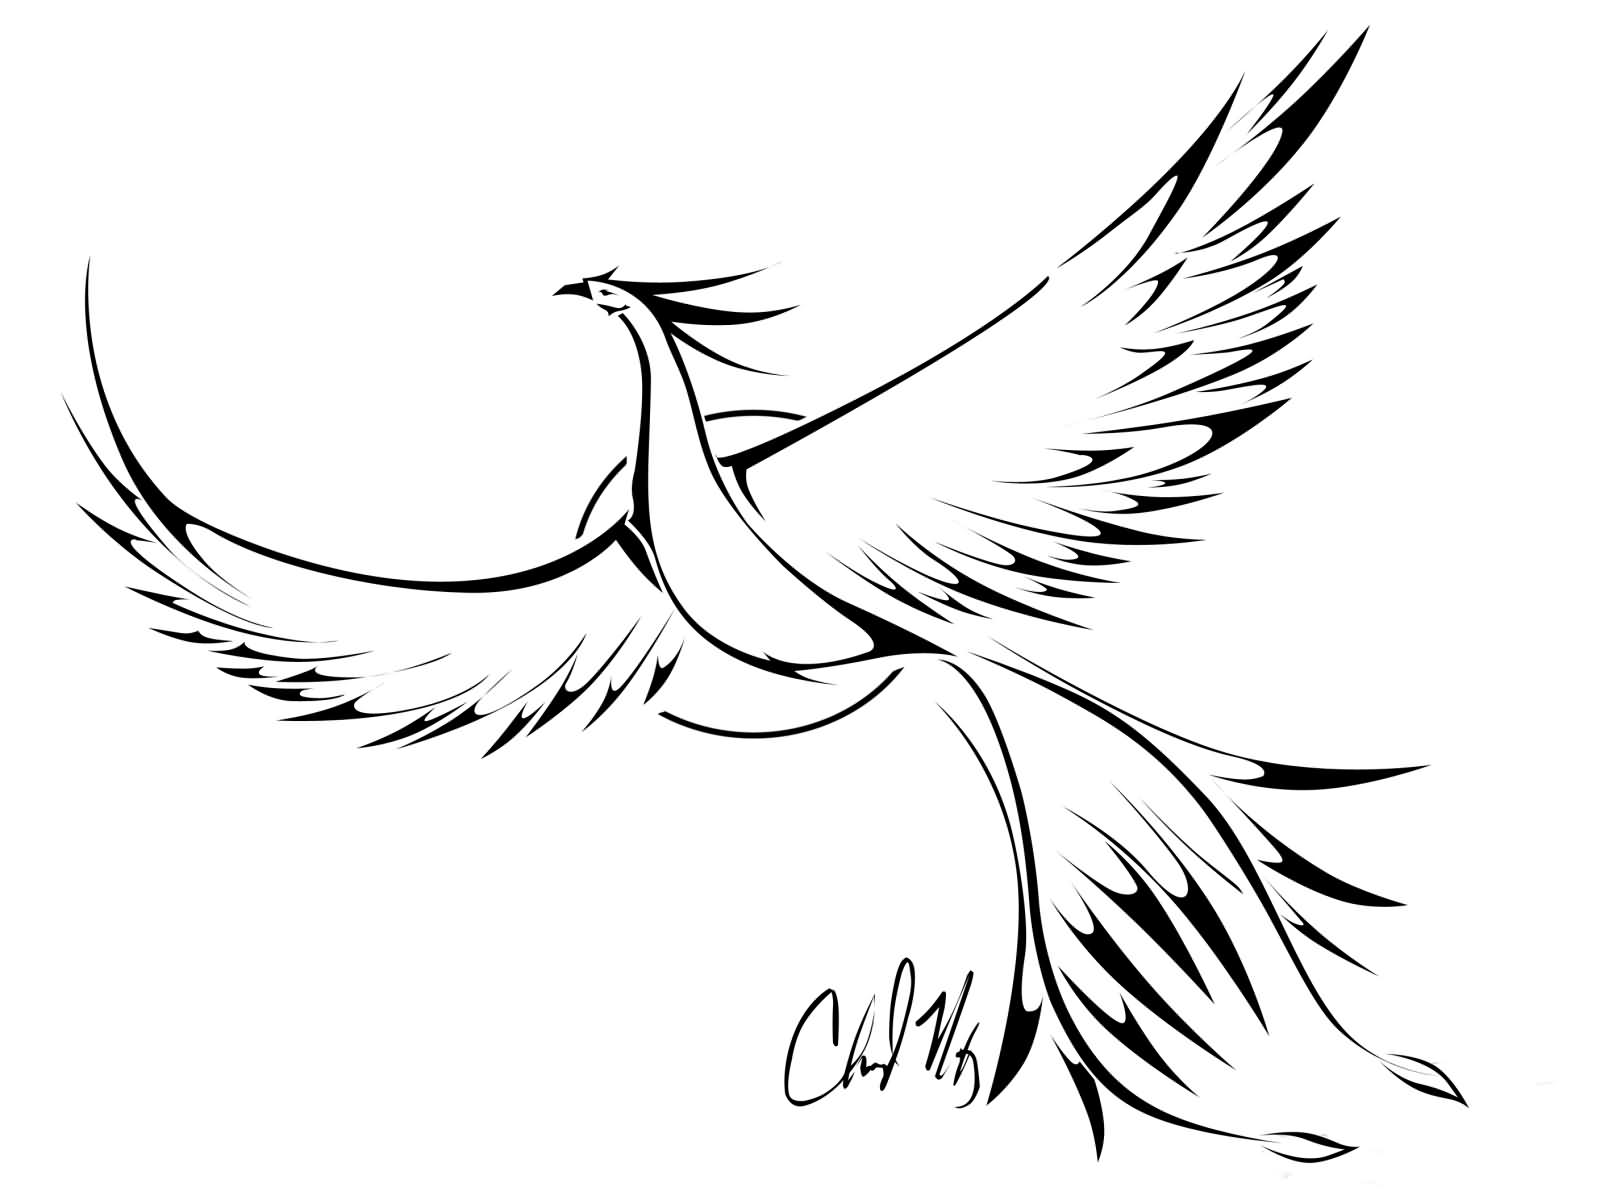 1600x1200 Black Outline Flying Phoenix Tattoo Stencil By Cheryl Maxey